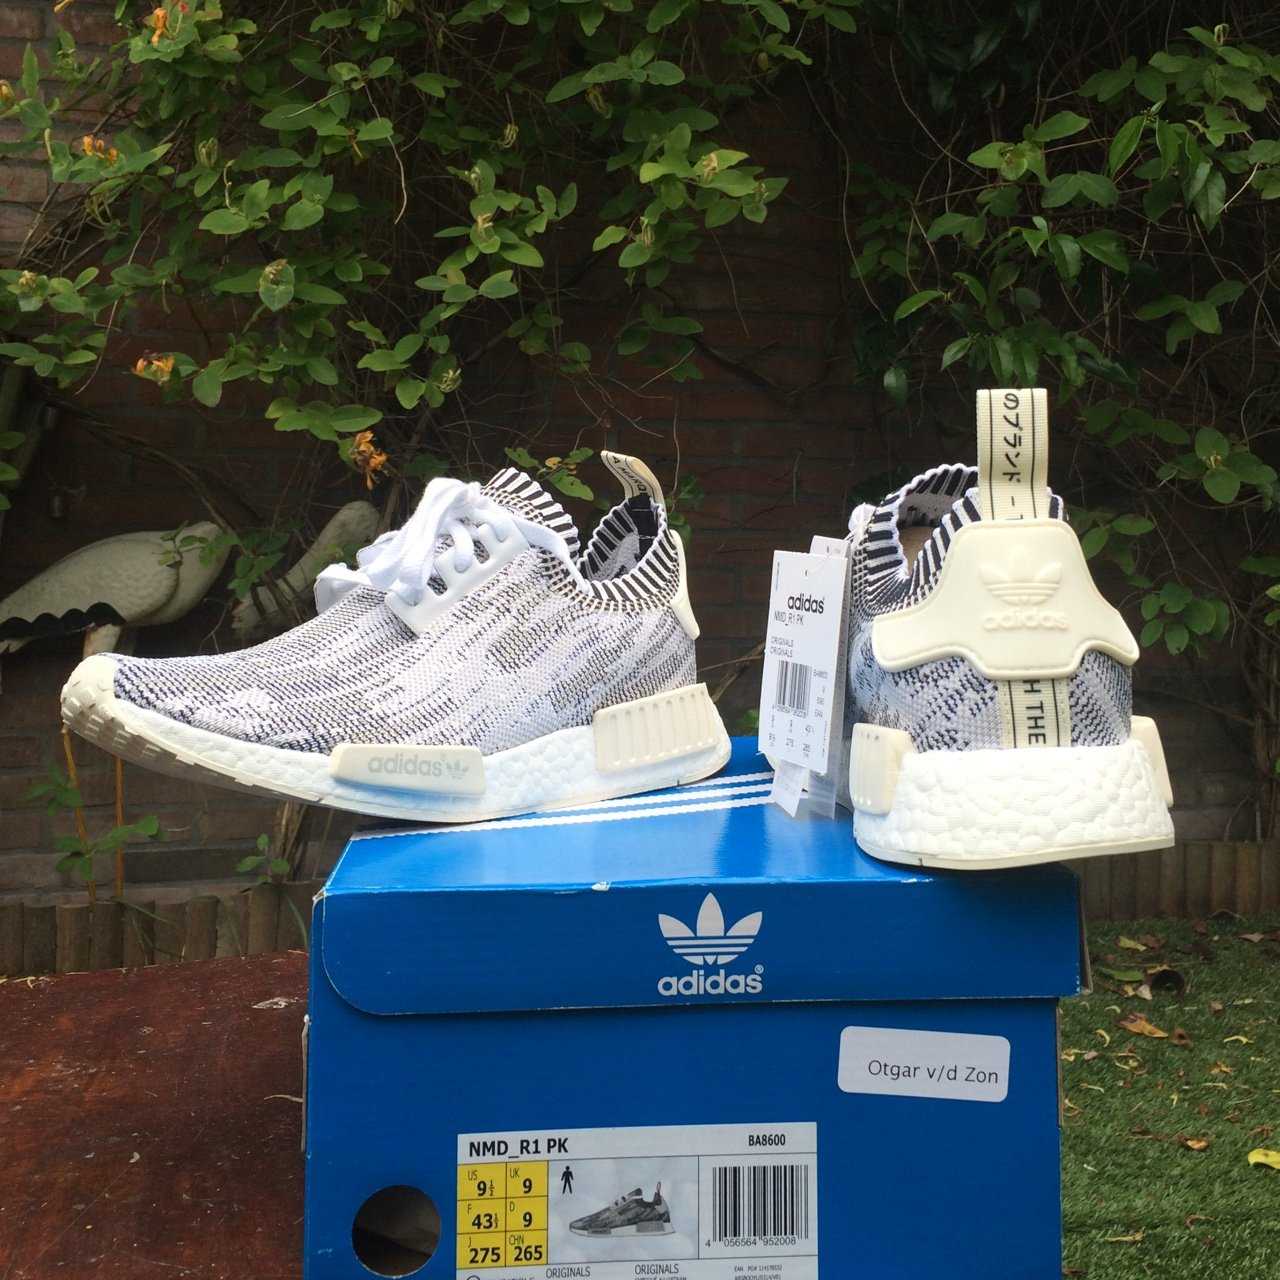 150cd064806 WTS Adidas NMD R1 PK. Camo white grey pack. Size EU43 1 3